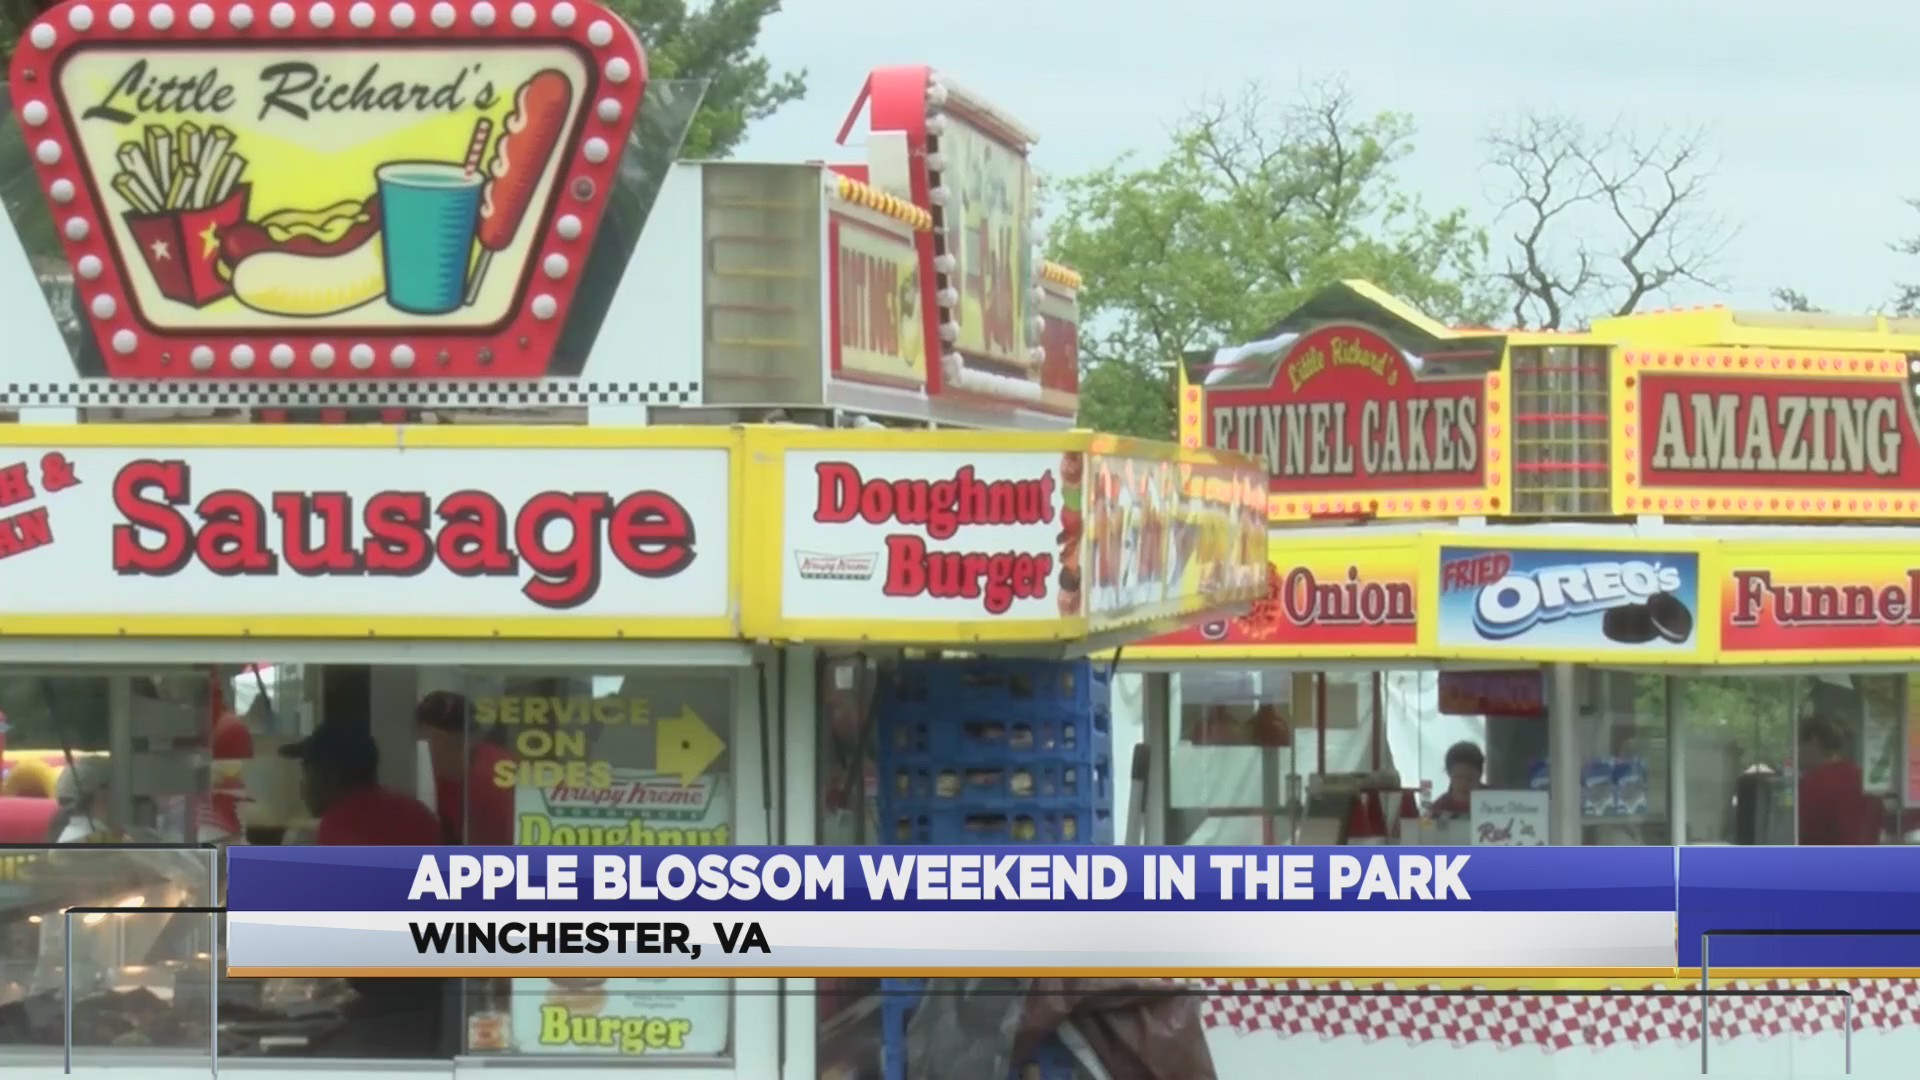 APPLE BLOSSOM WEEKEND